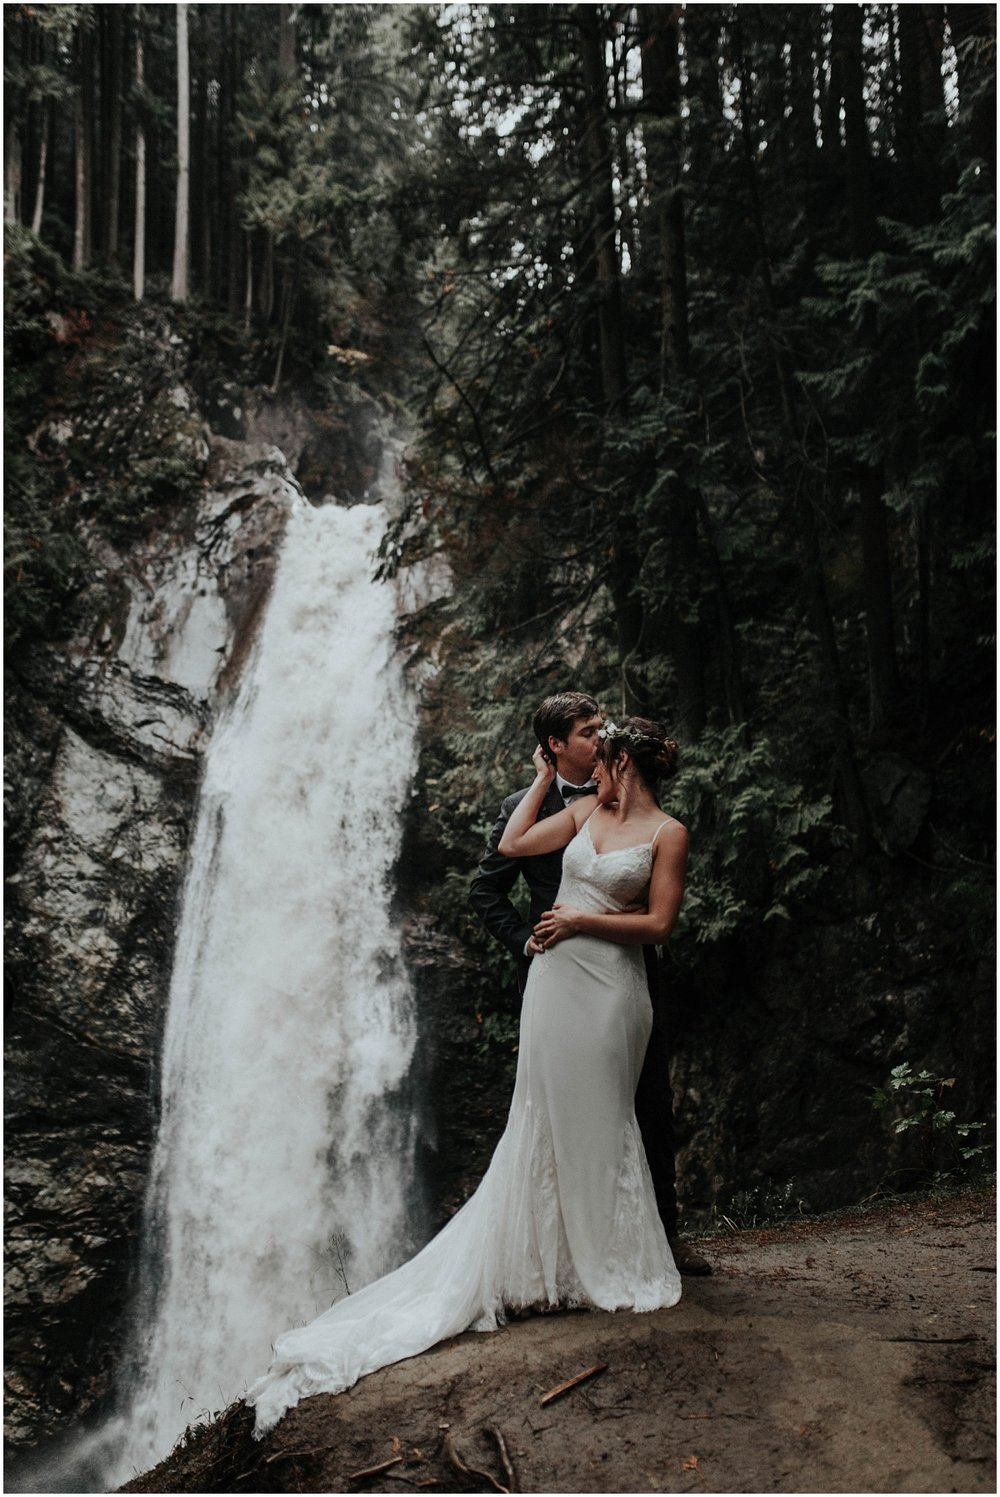 Flood hope falls waterfall elopement by the mclachlans bc wedding photographers_0049.jpg